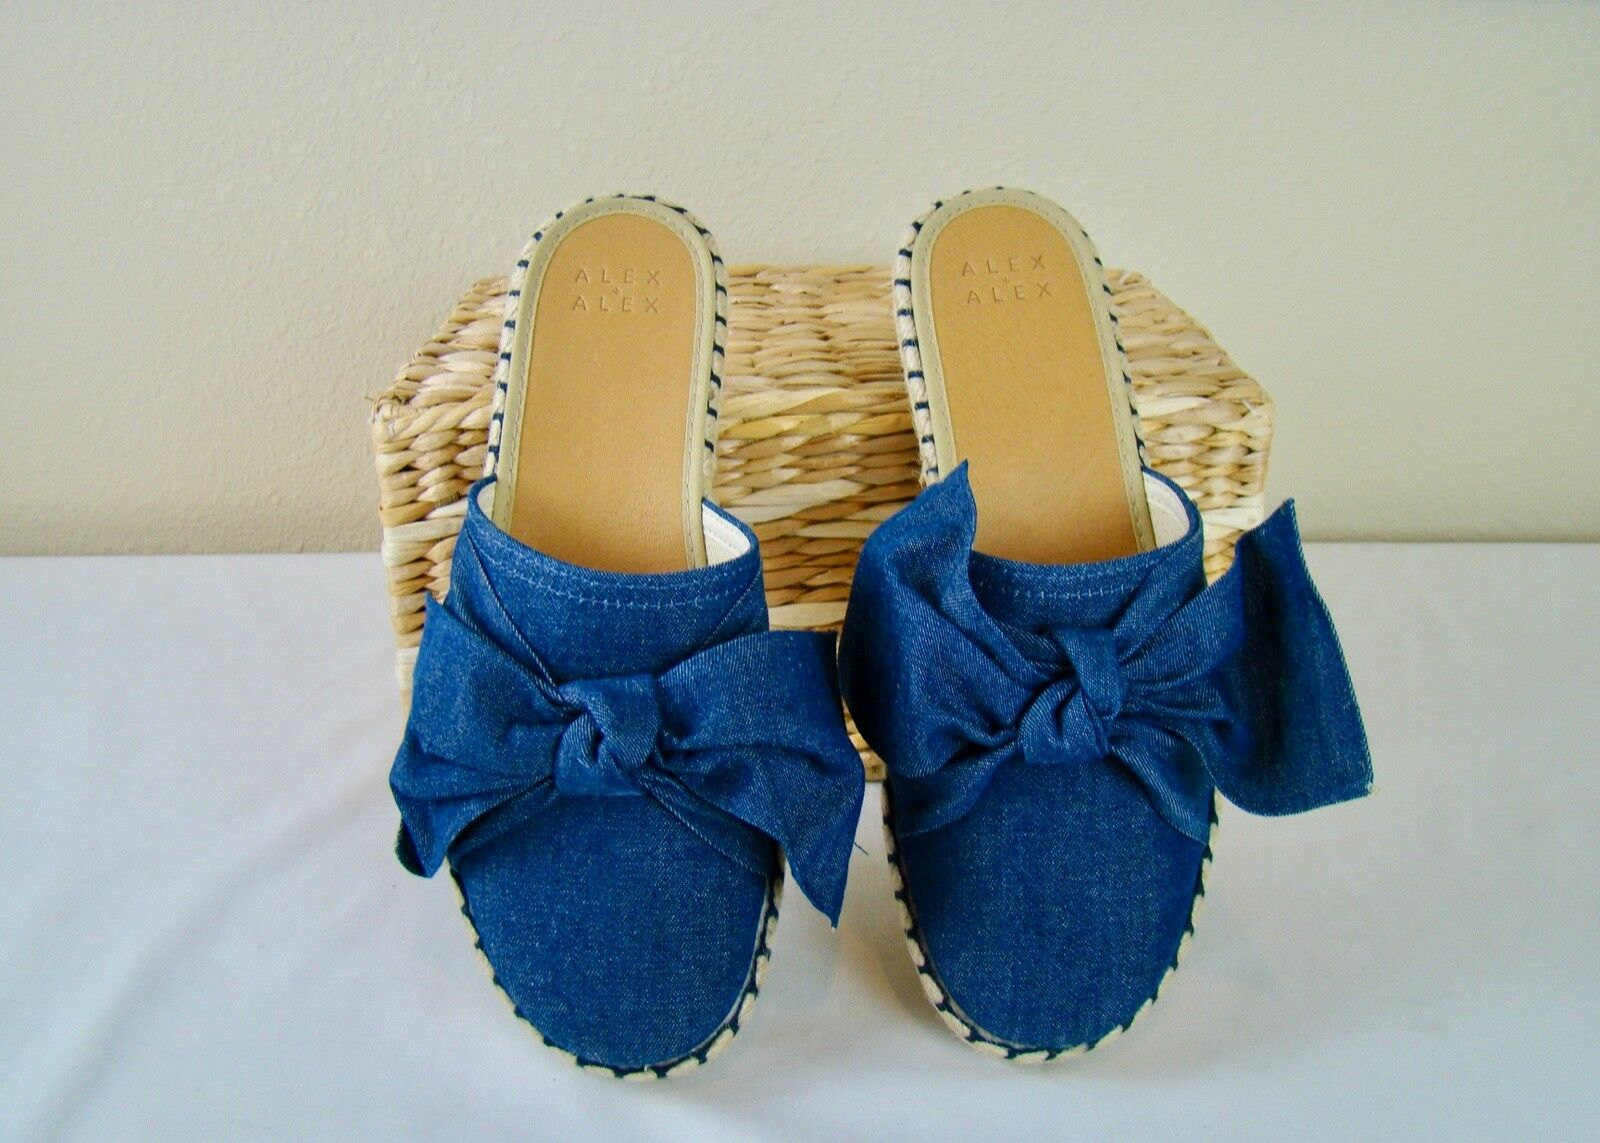 Alex Marie Denim Bow Mules Espadrilles - NEW - Taille 39 8.5